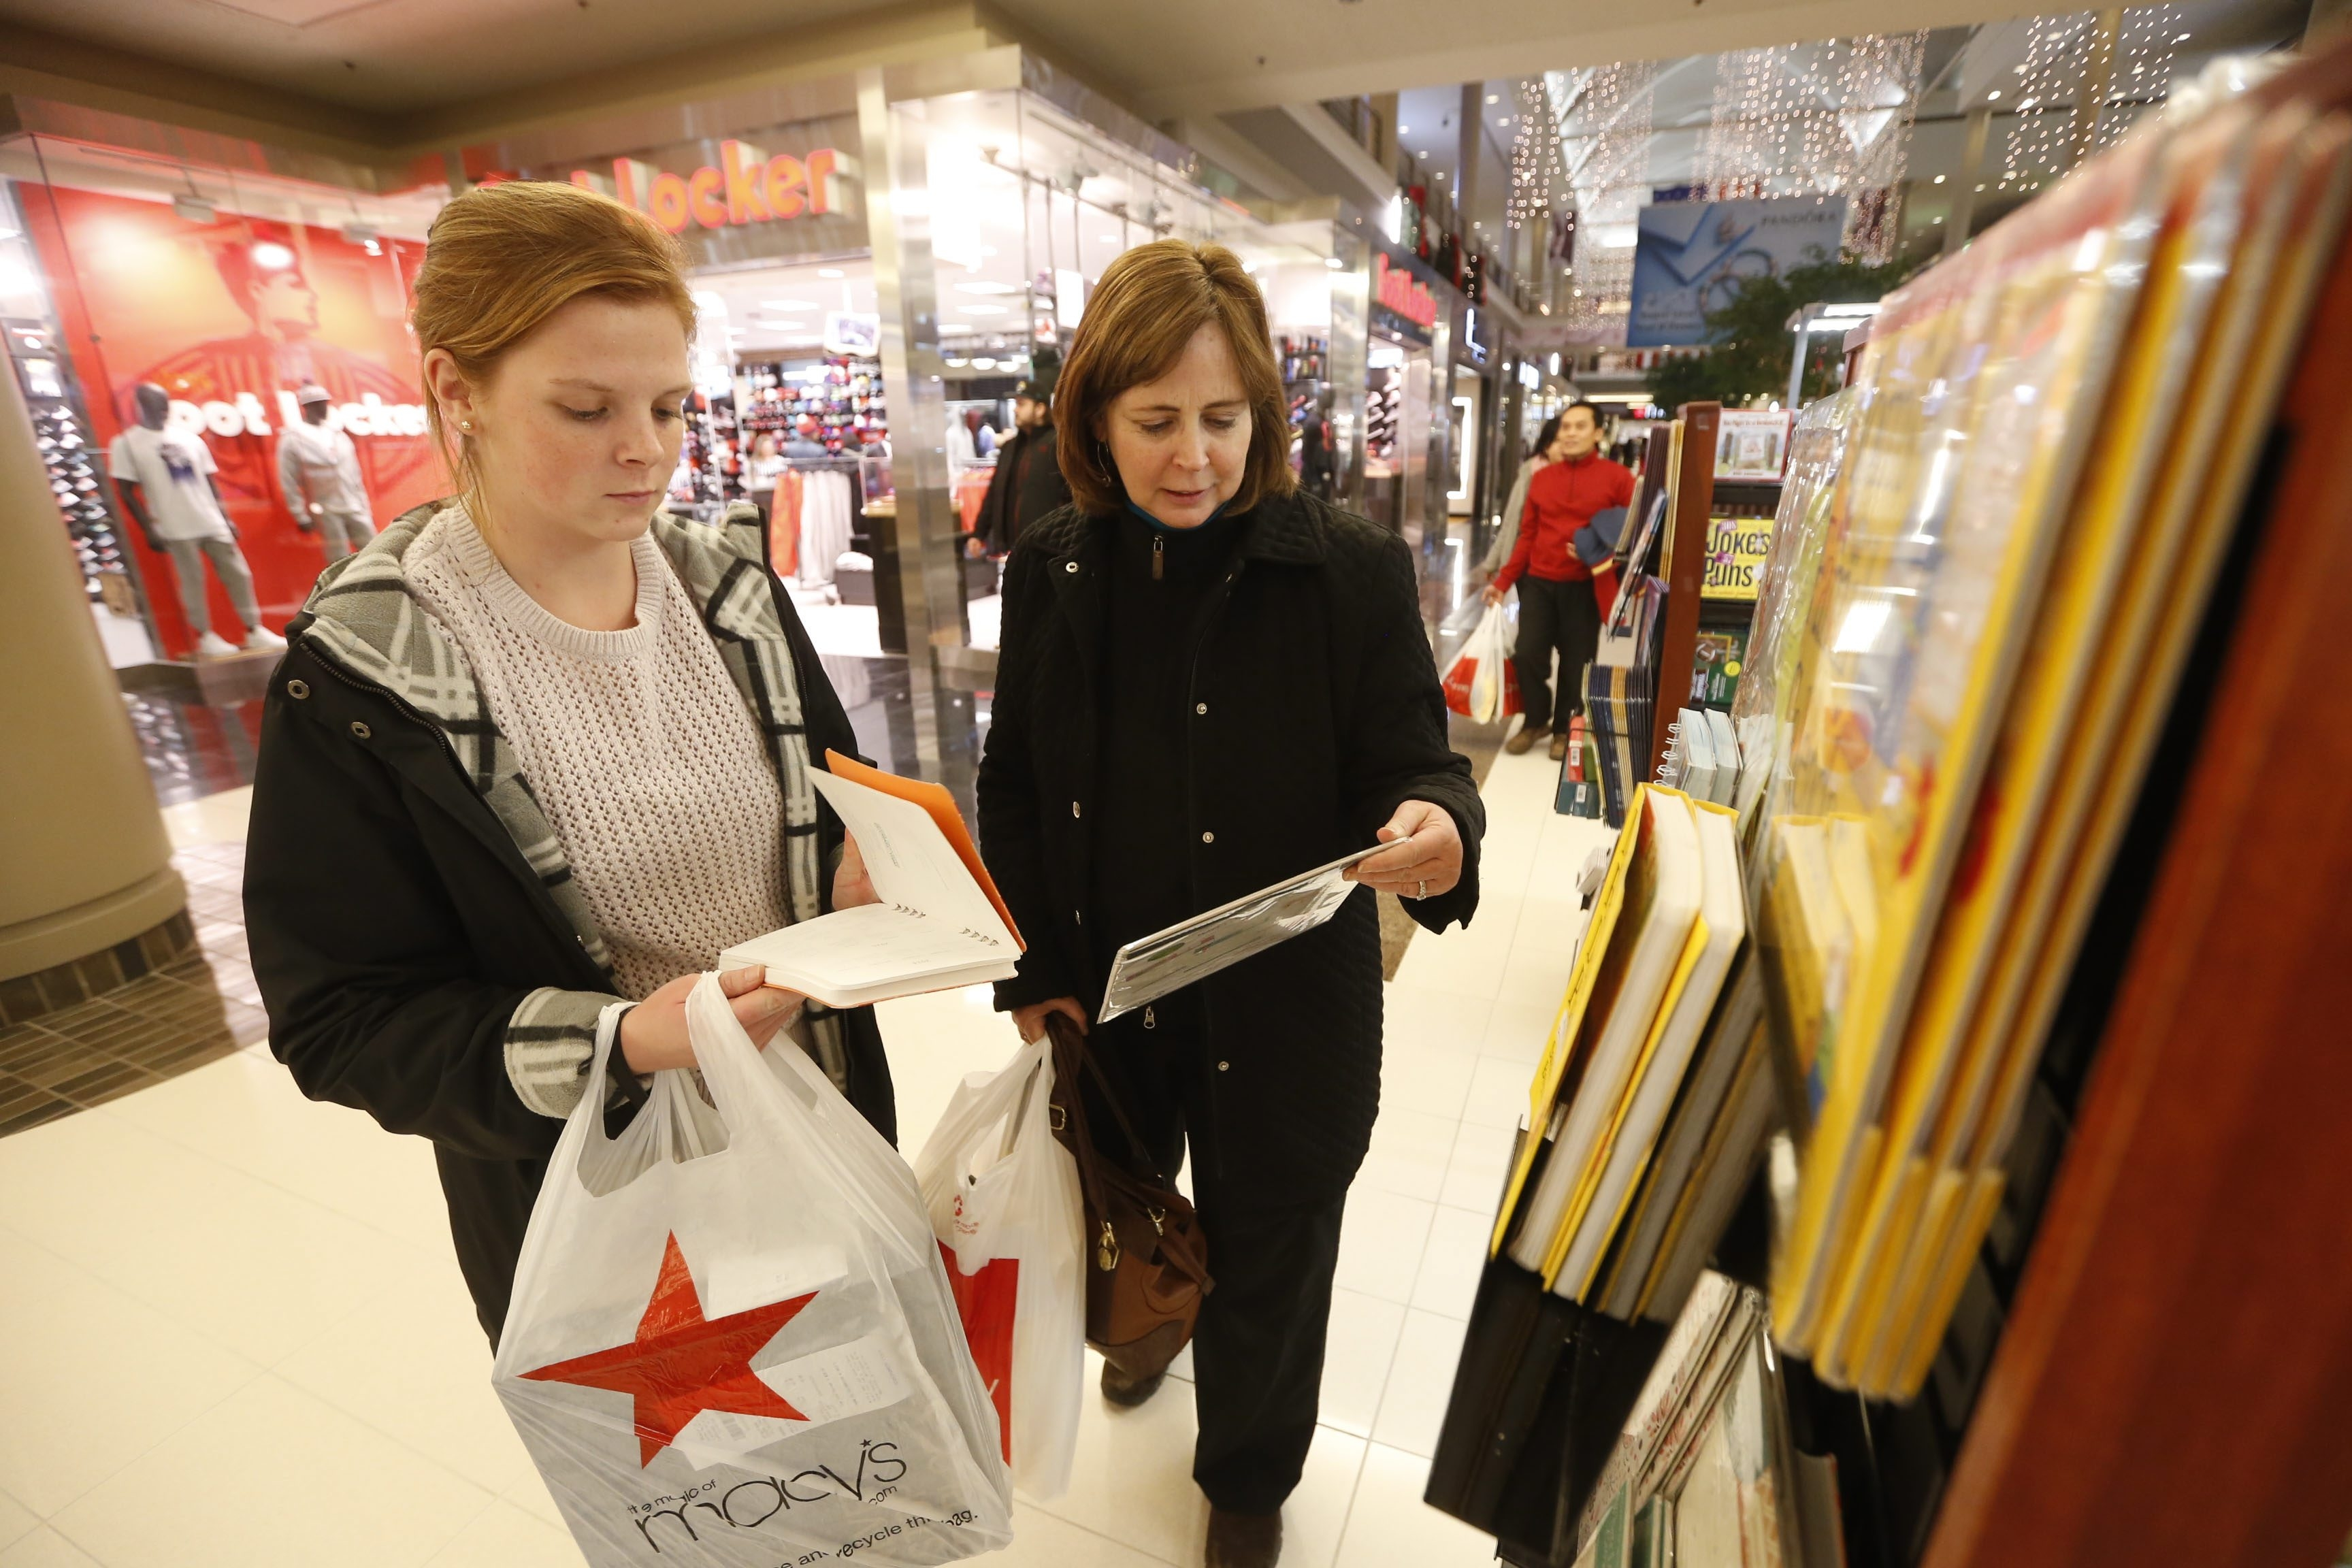 Meghan Wilcox, left, and her mom, Patti Service, shop at the Walden Galleria after an early Thanksgiving dinner.